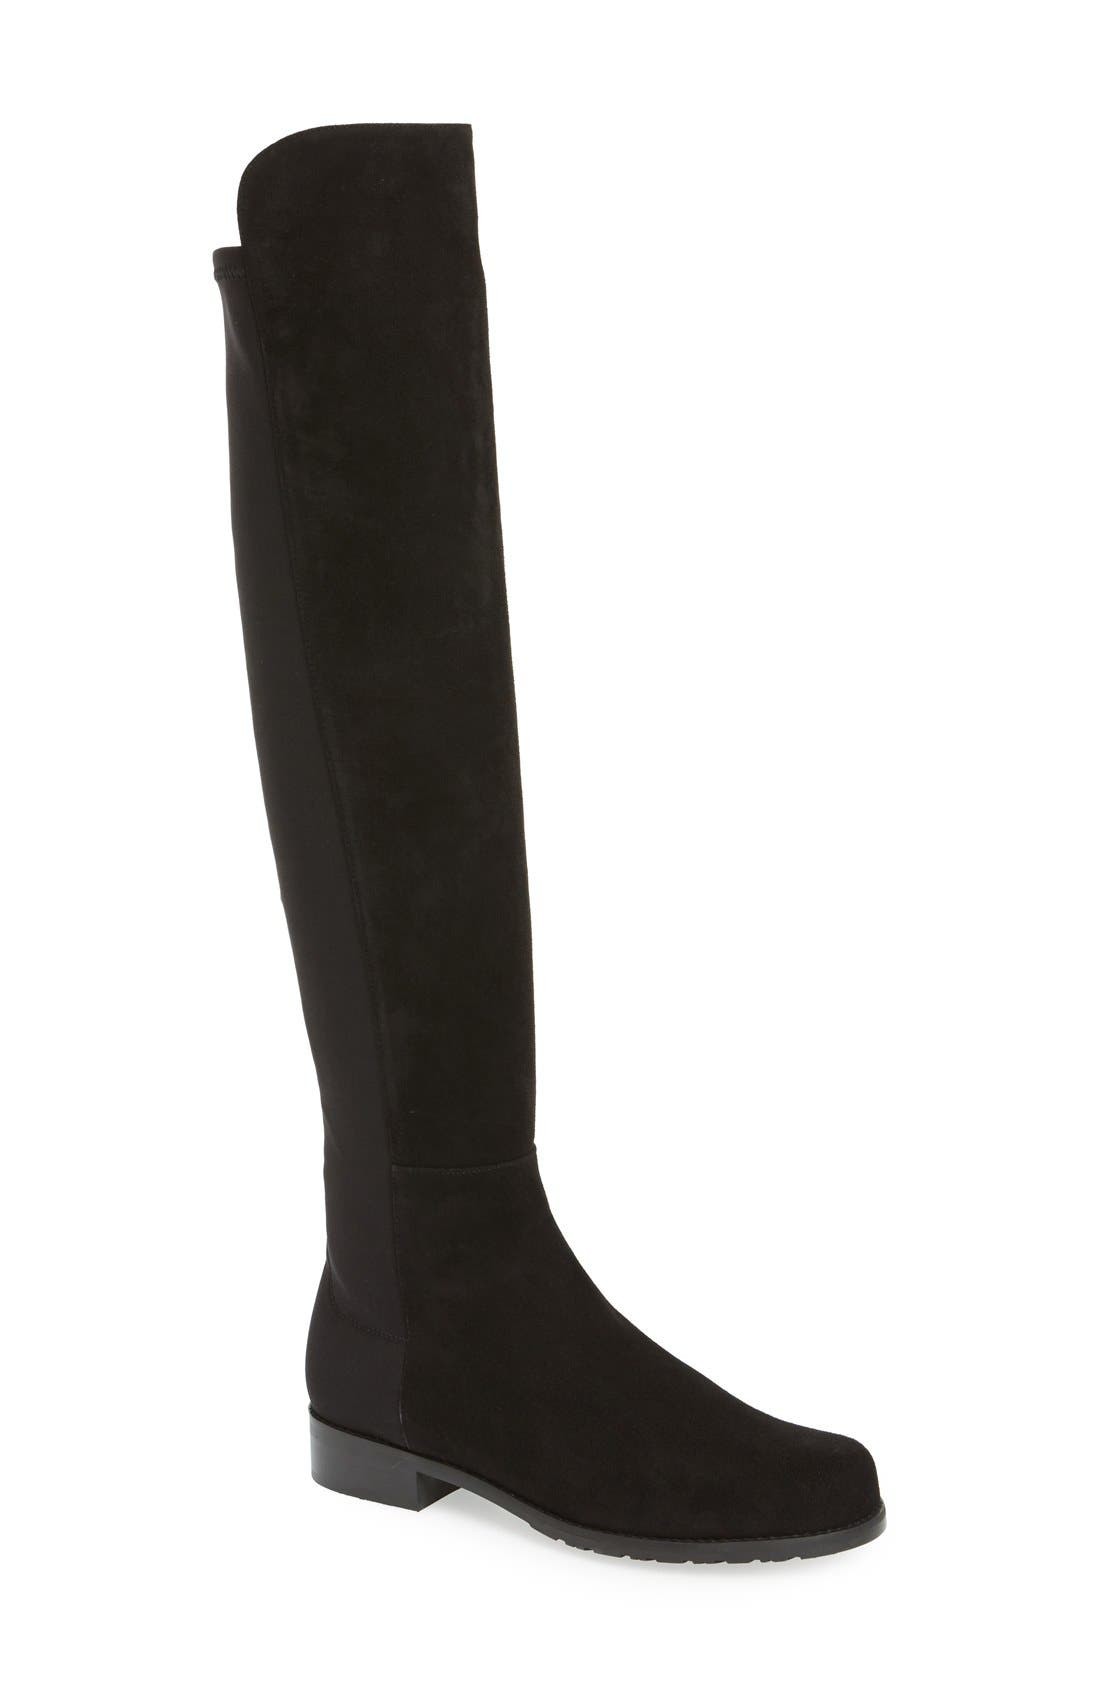 Stuart Weitzman 5050 Over the Knee Leather Boot (Women)